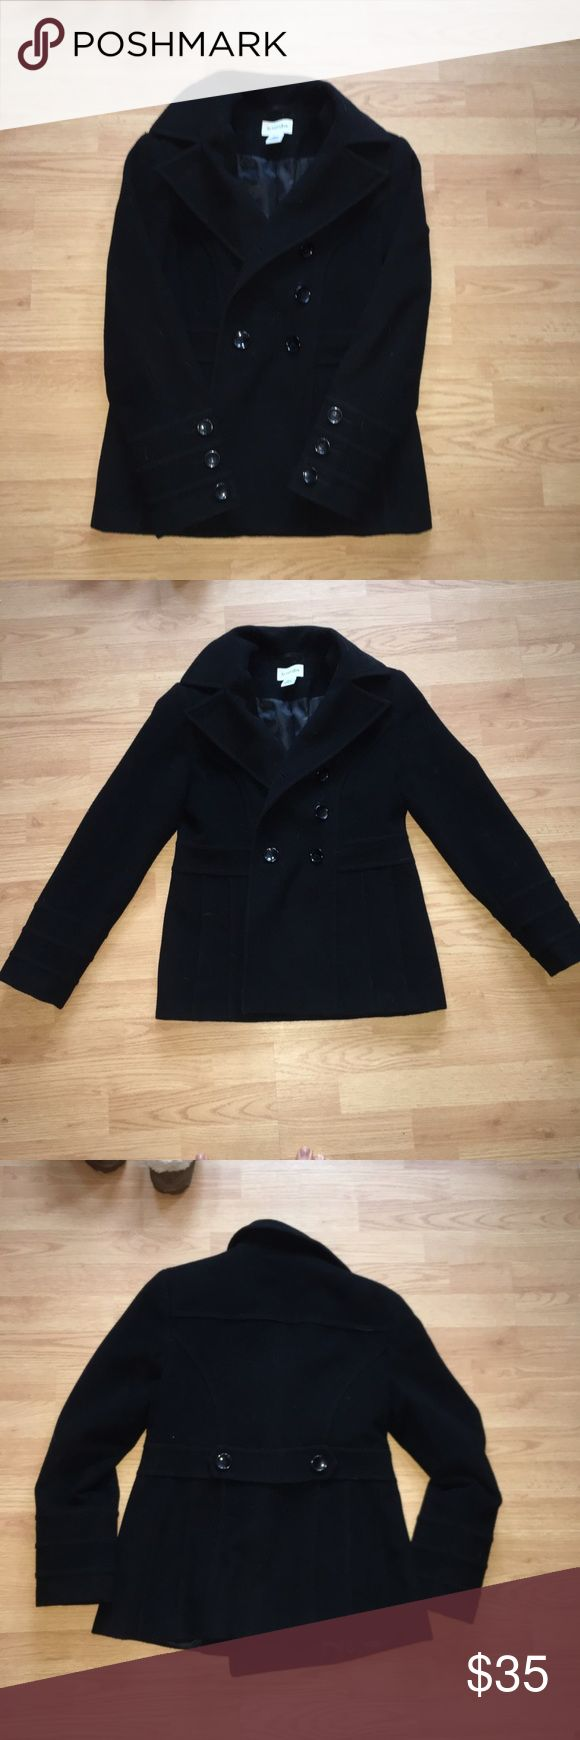 St. John's bay black pea coat St. John's bay black pea coat st johns bay Jackets & Coats Pea Coats